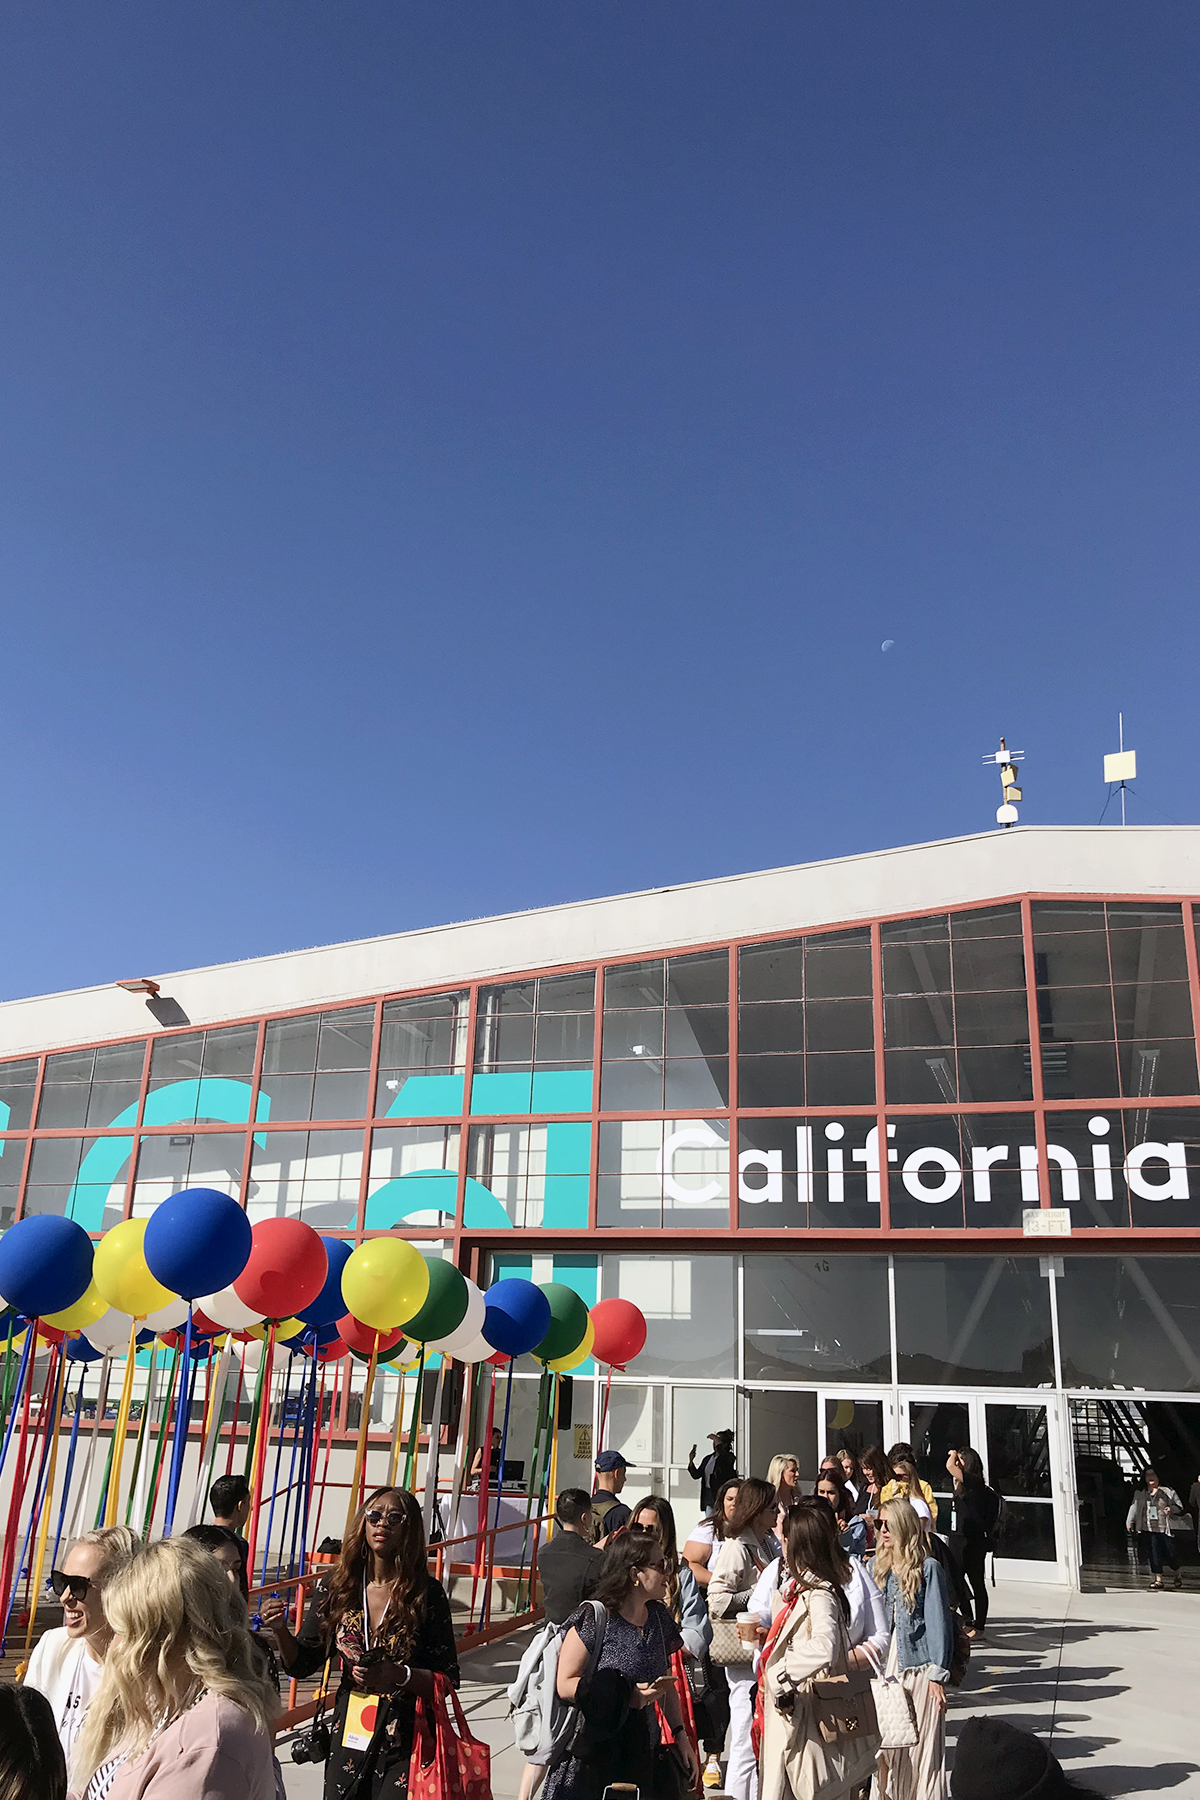 Pinterest Conference at California College of the Arts #MyPinterest